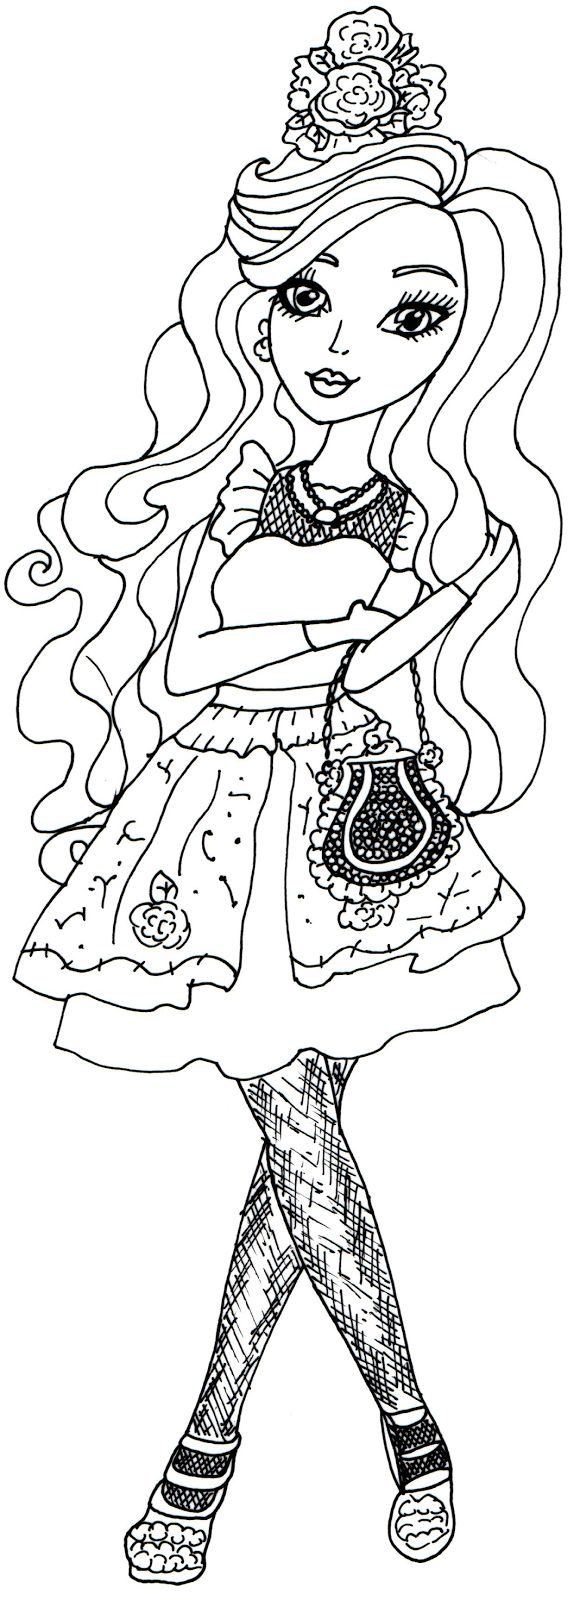 11 best colouring in pages images on pinterest coloring books